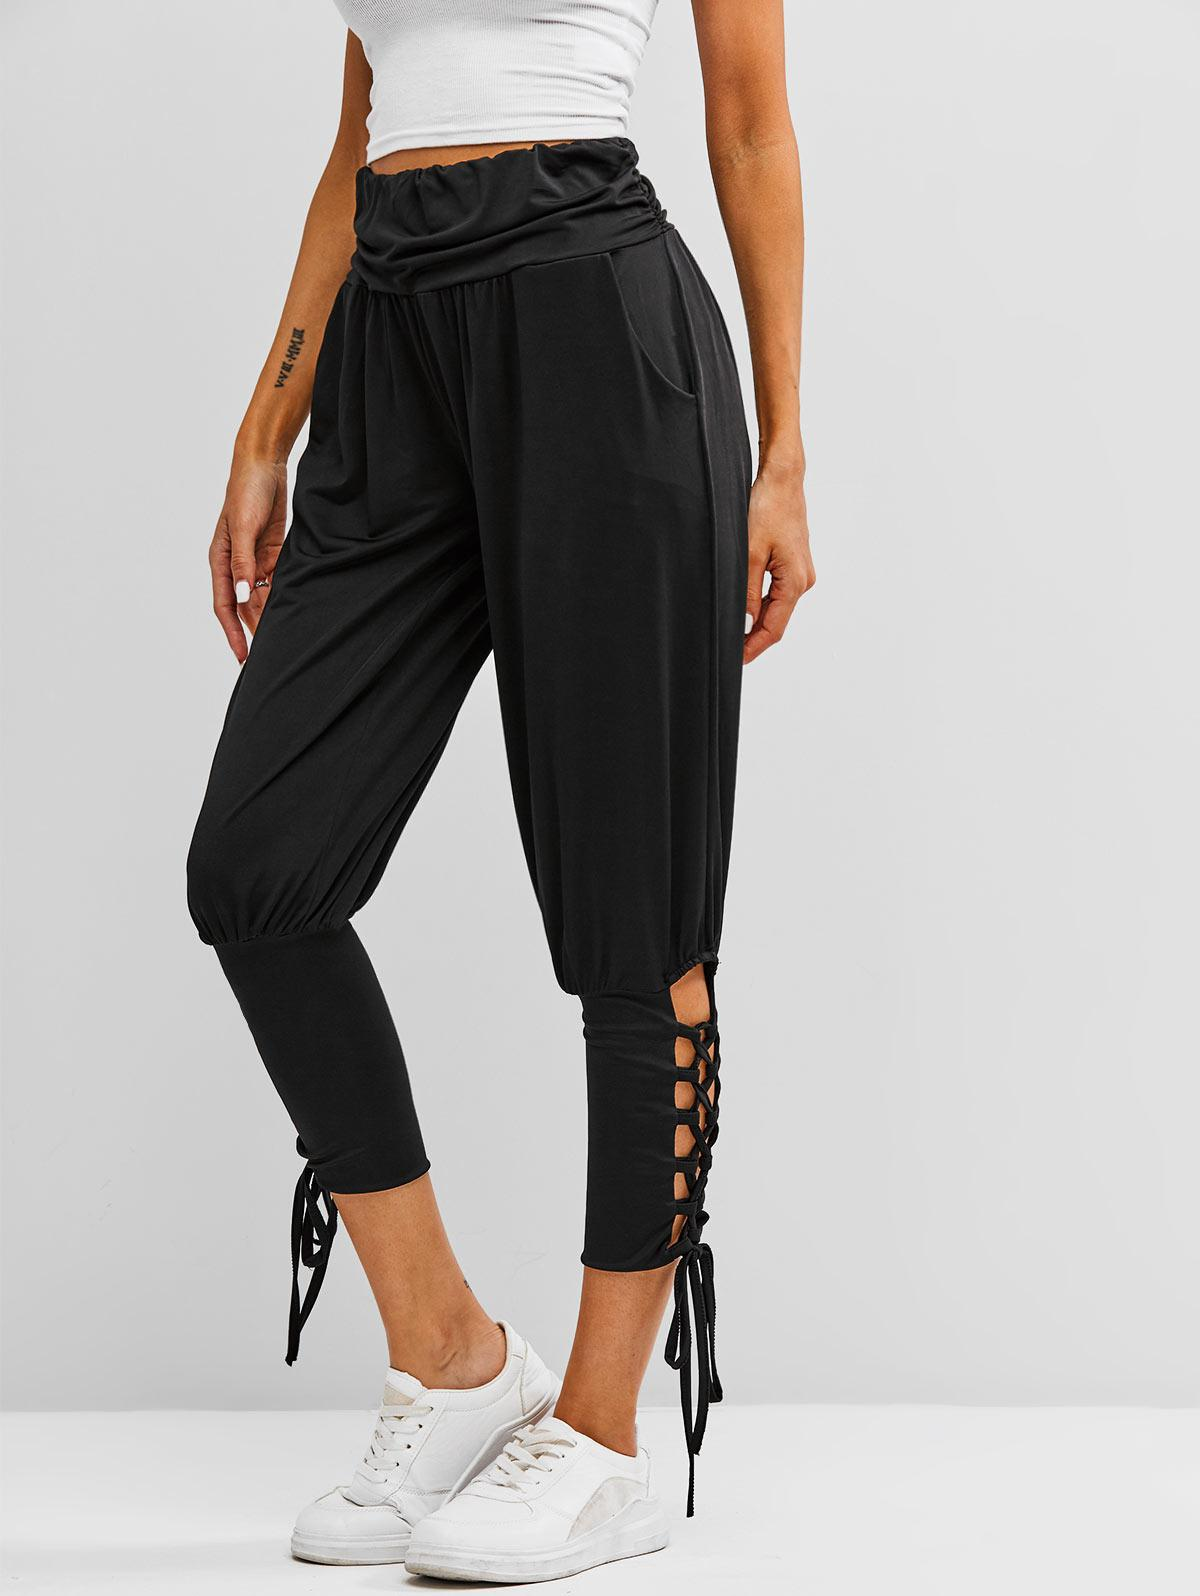 Ruched Waist Lace Up Yoga Sports Pants